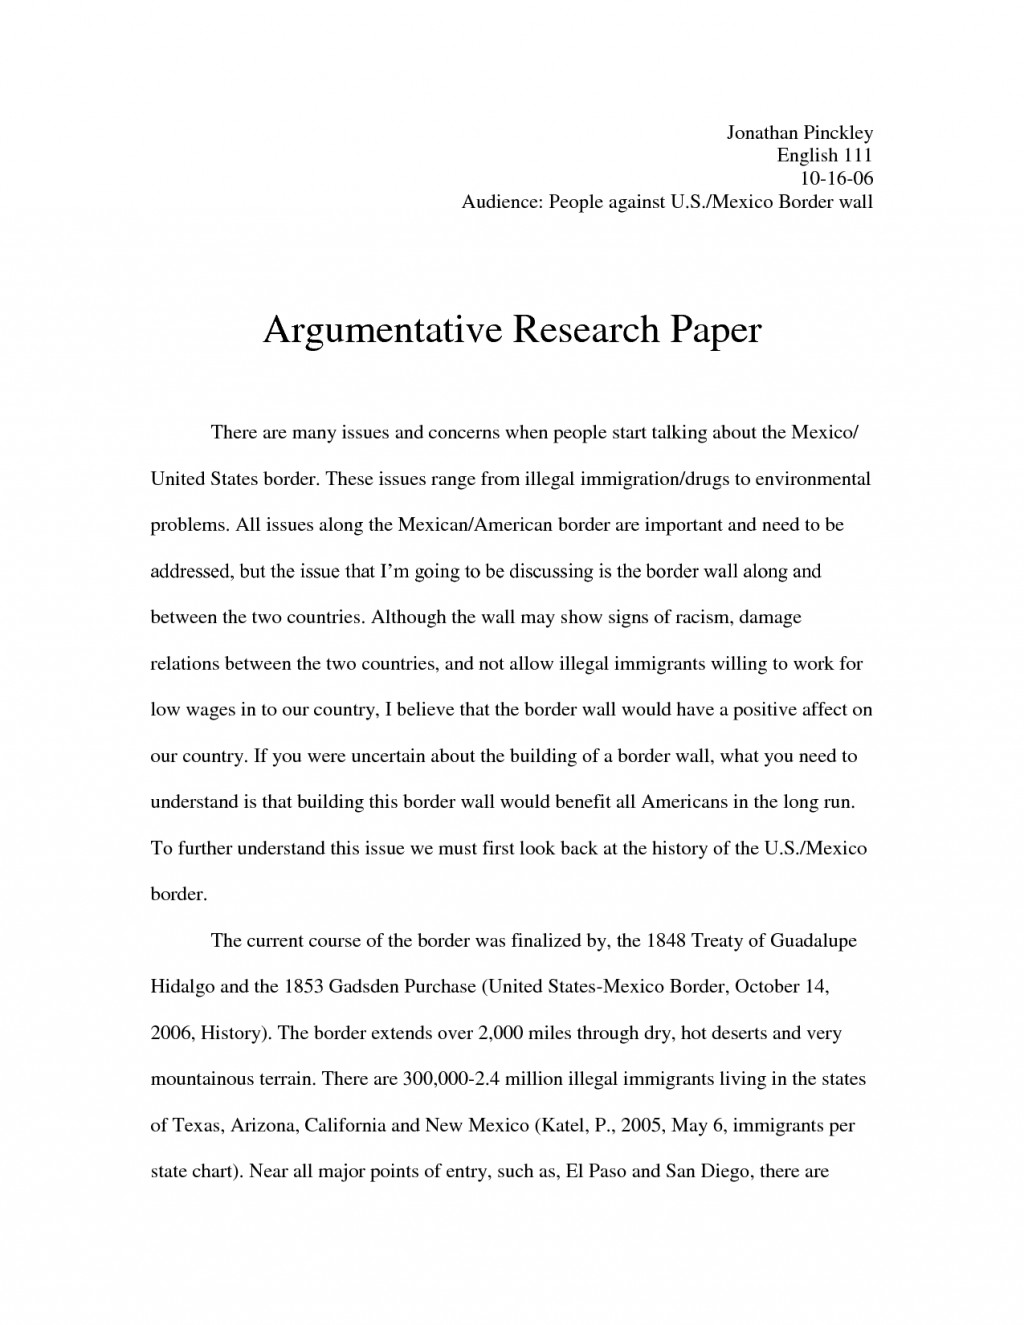 014 Uncategorized Debate20y Argumentative Thesis High School Topics Sentence Starters Outline Worksheet Structure20 For Research Rare A Paper Easy Papers Interesting Large